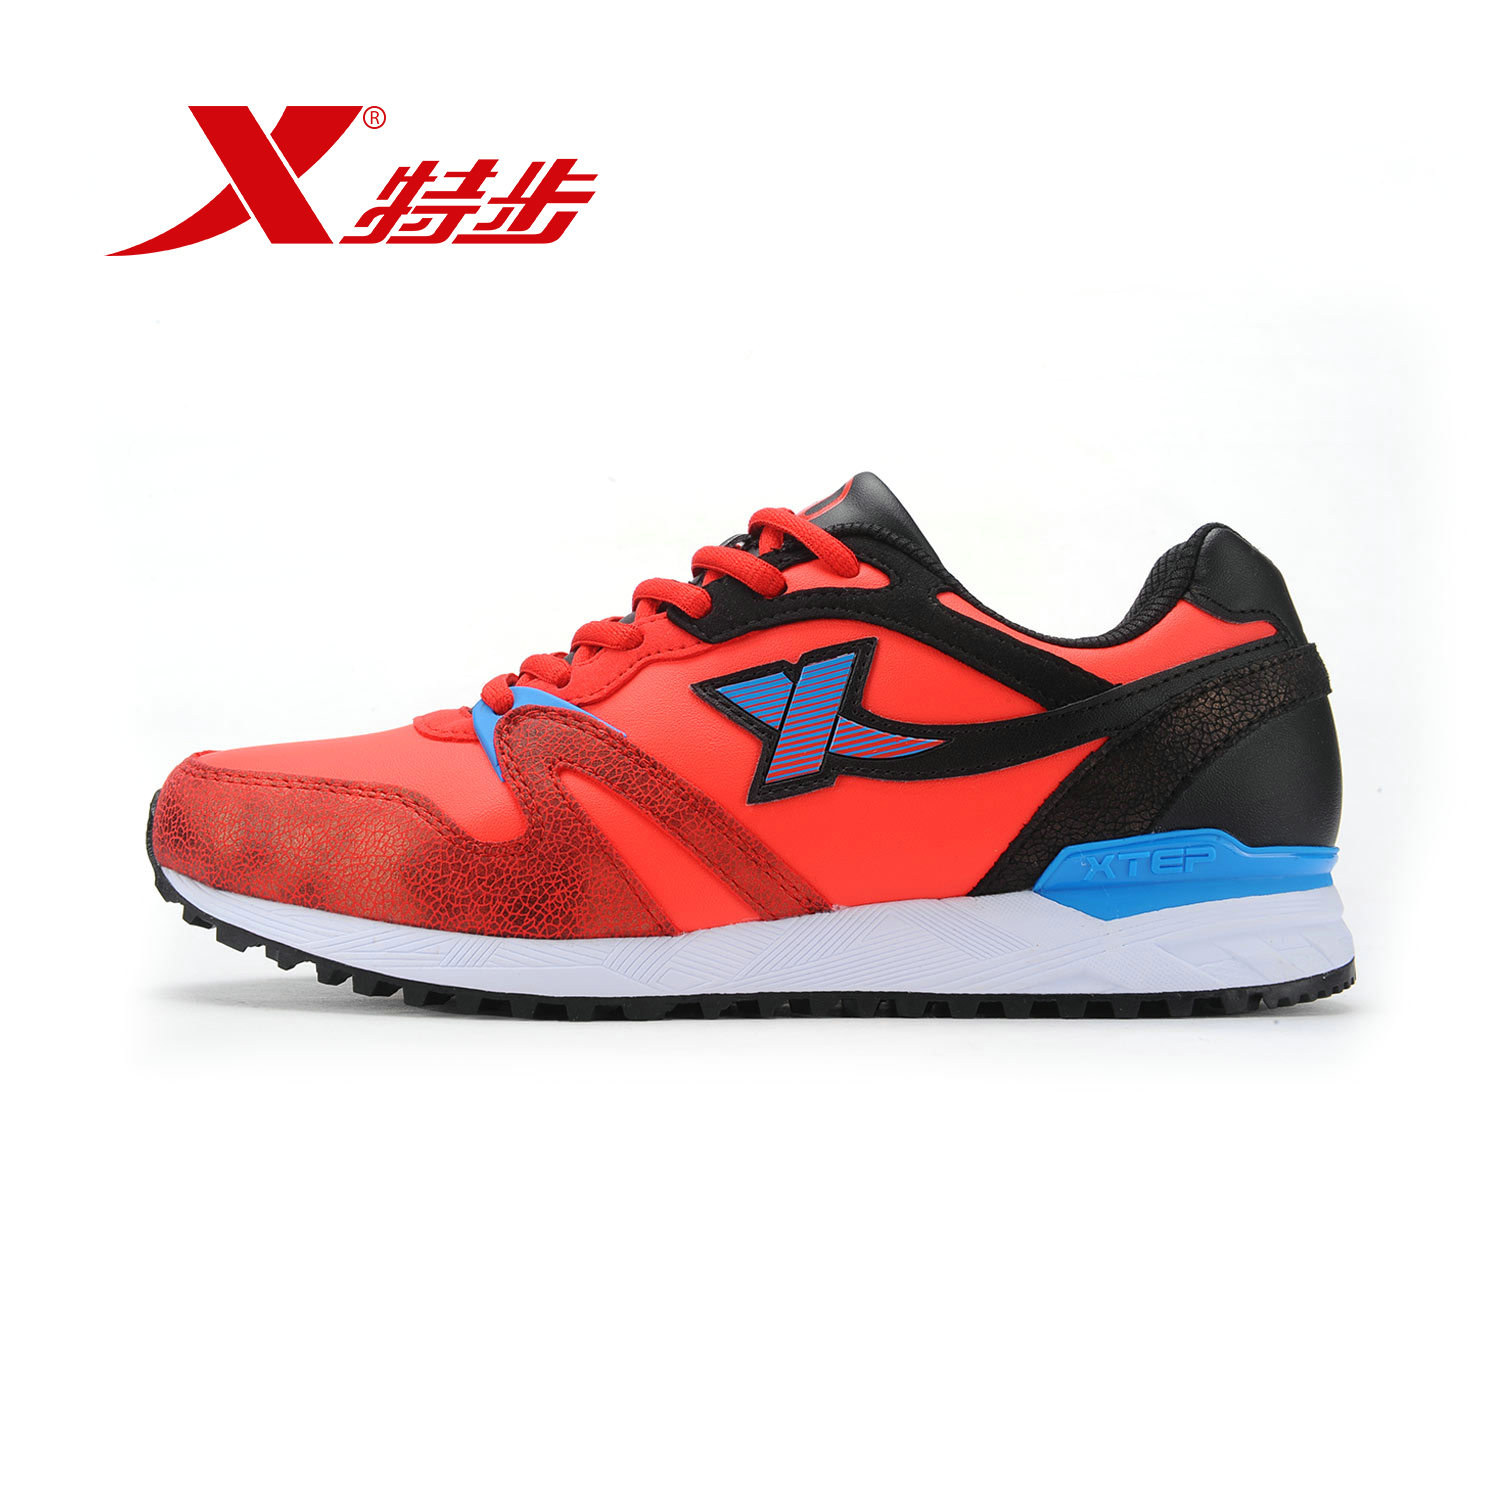 [Official] xtep xtep men's casual shoes men 2016 new fall fashion casual sports shoes running shoes to keep warm